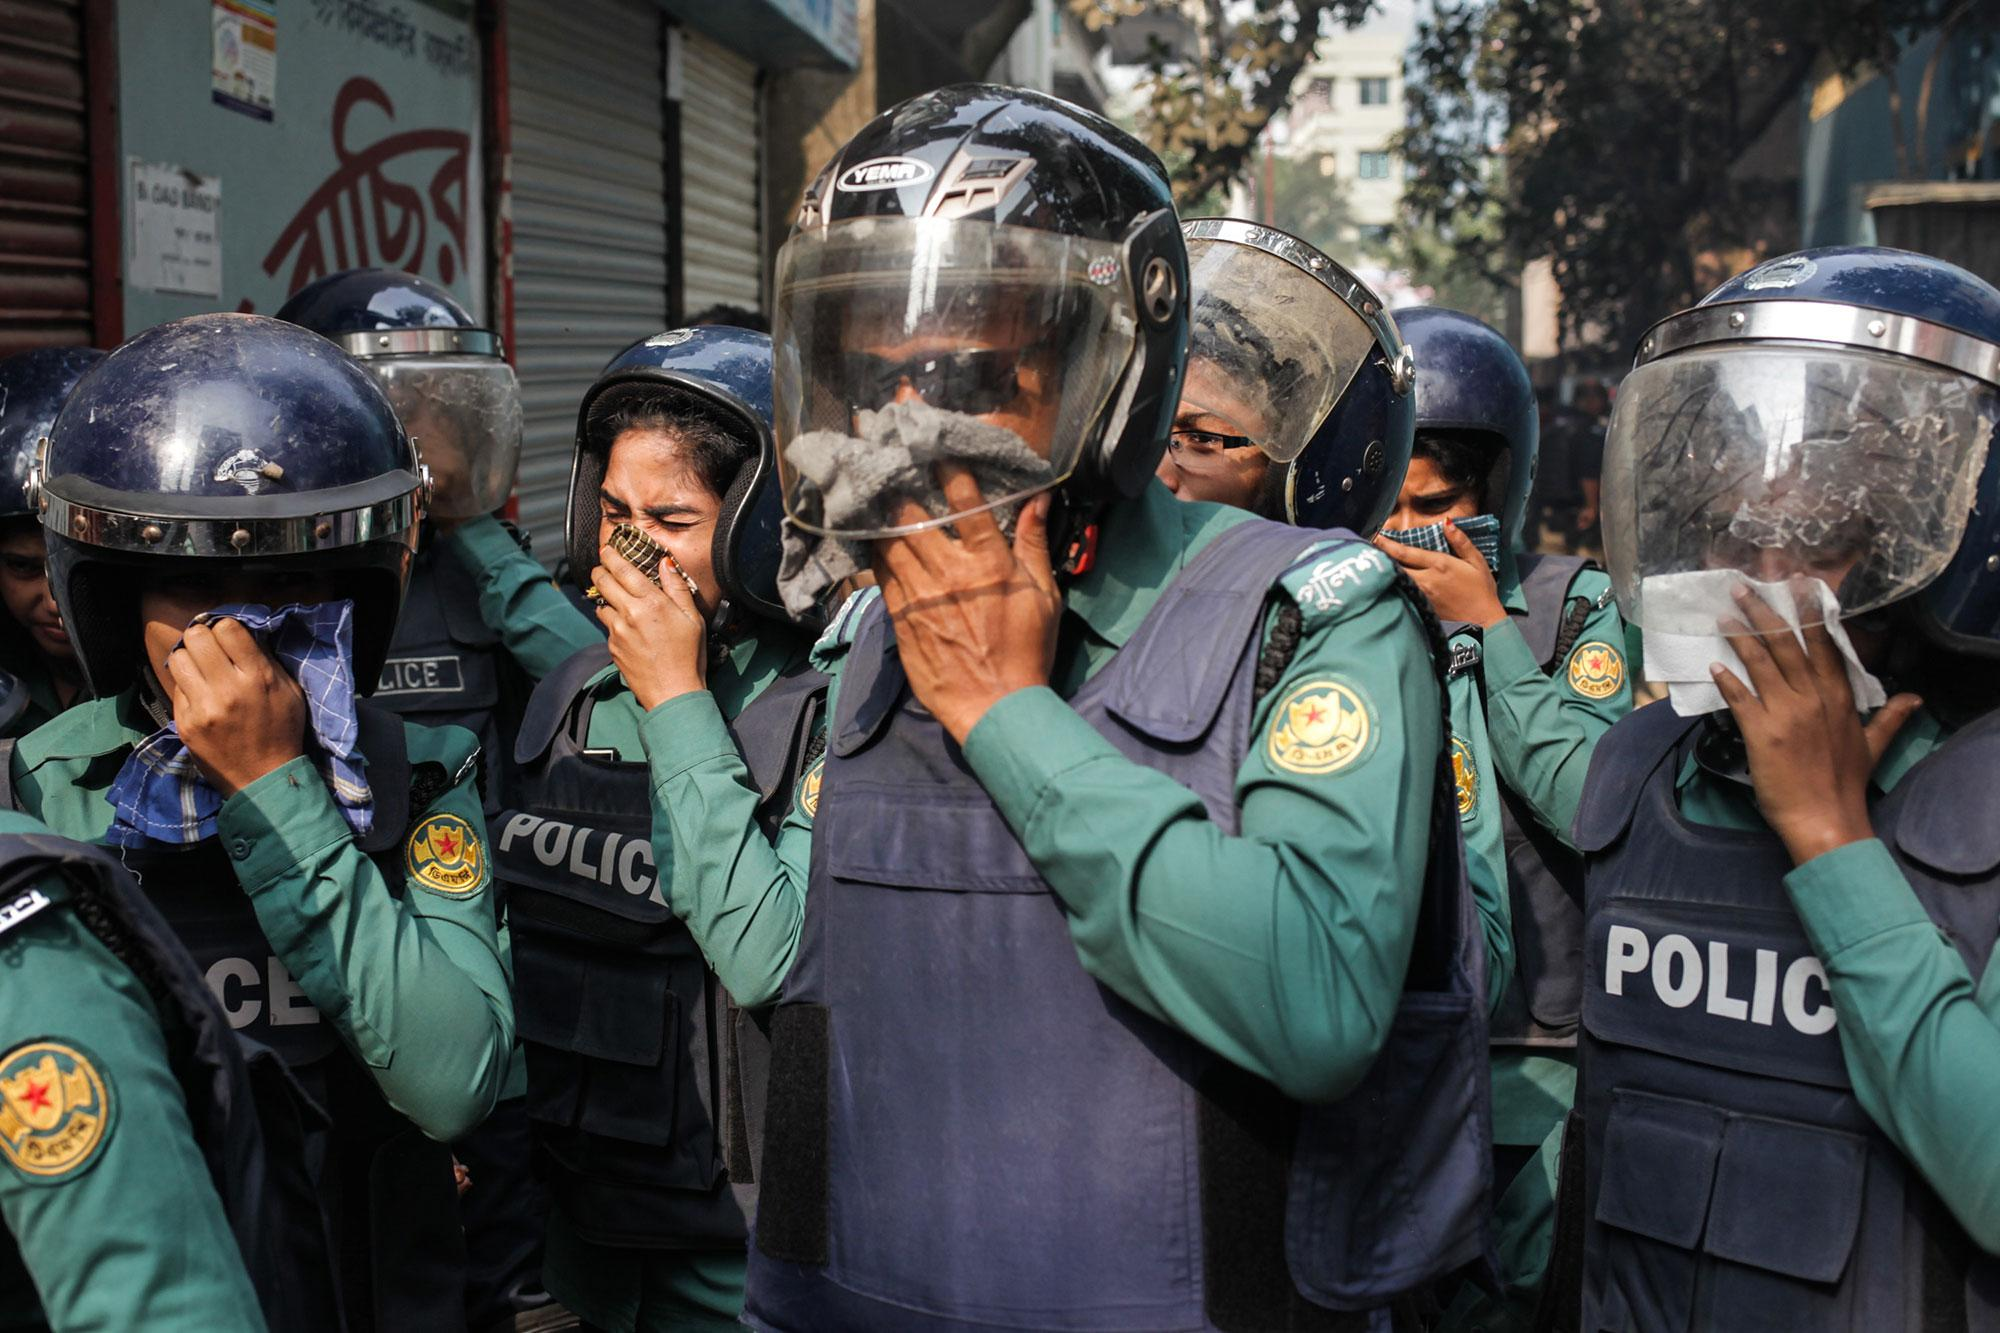 <p>Counter terrorism unit of Police hold their nose after the suicidal vest explosion by the militants at Ashkona in Dhaka, Bangladesh on Dec. 24, 2016. Two female militants along with two children surrendered to the cops, 1 female and a teen militant killed themselves during police raid by exploding suicidal vest outside their den while acting to surrender to the cops. (Photo: Anik Rahman/NurPhoto via Getty Images) </p>